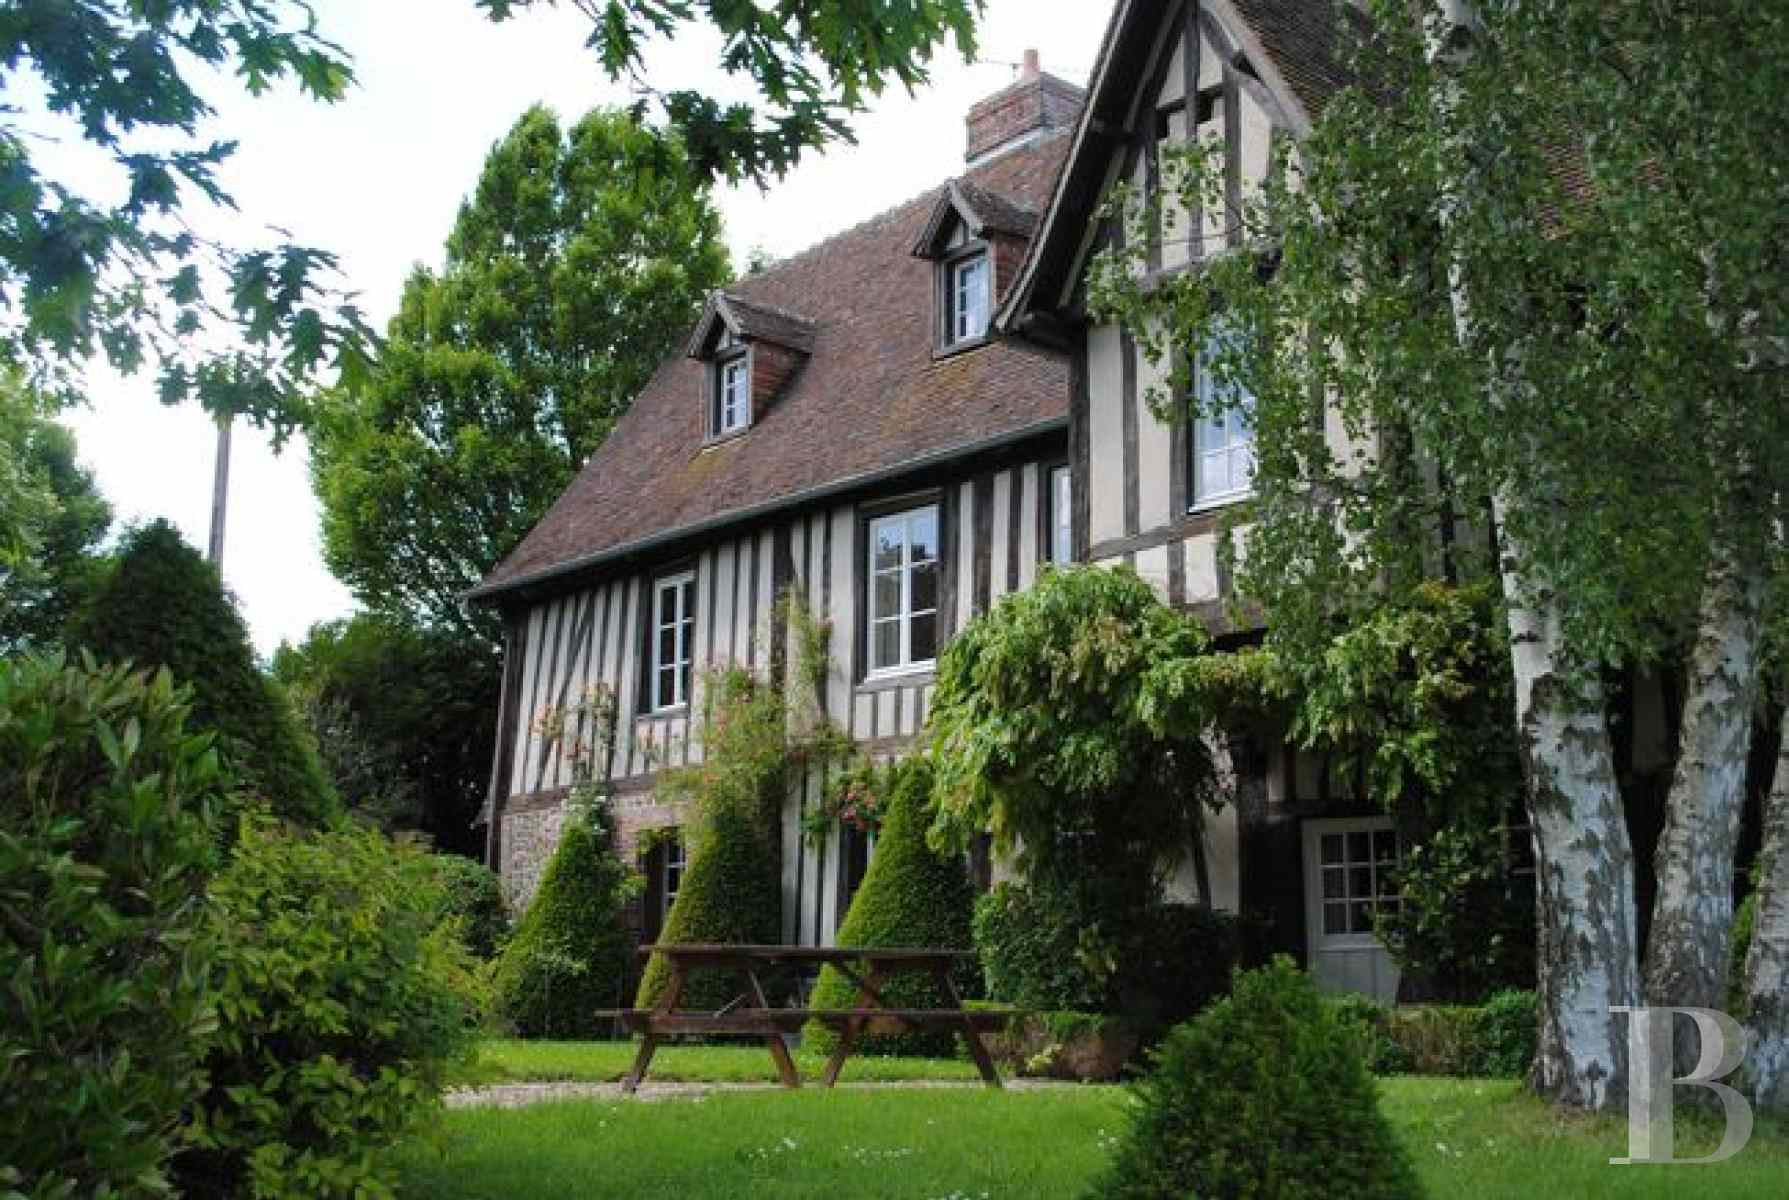 France mansions for sale lower normandy property for - 2 zoom